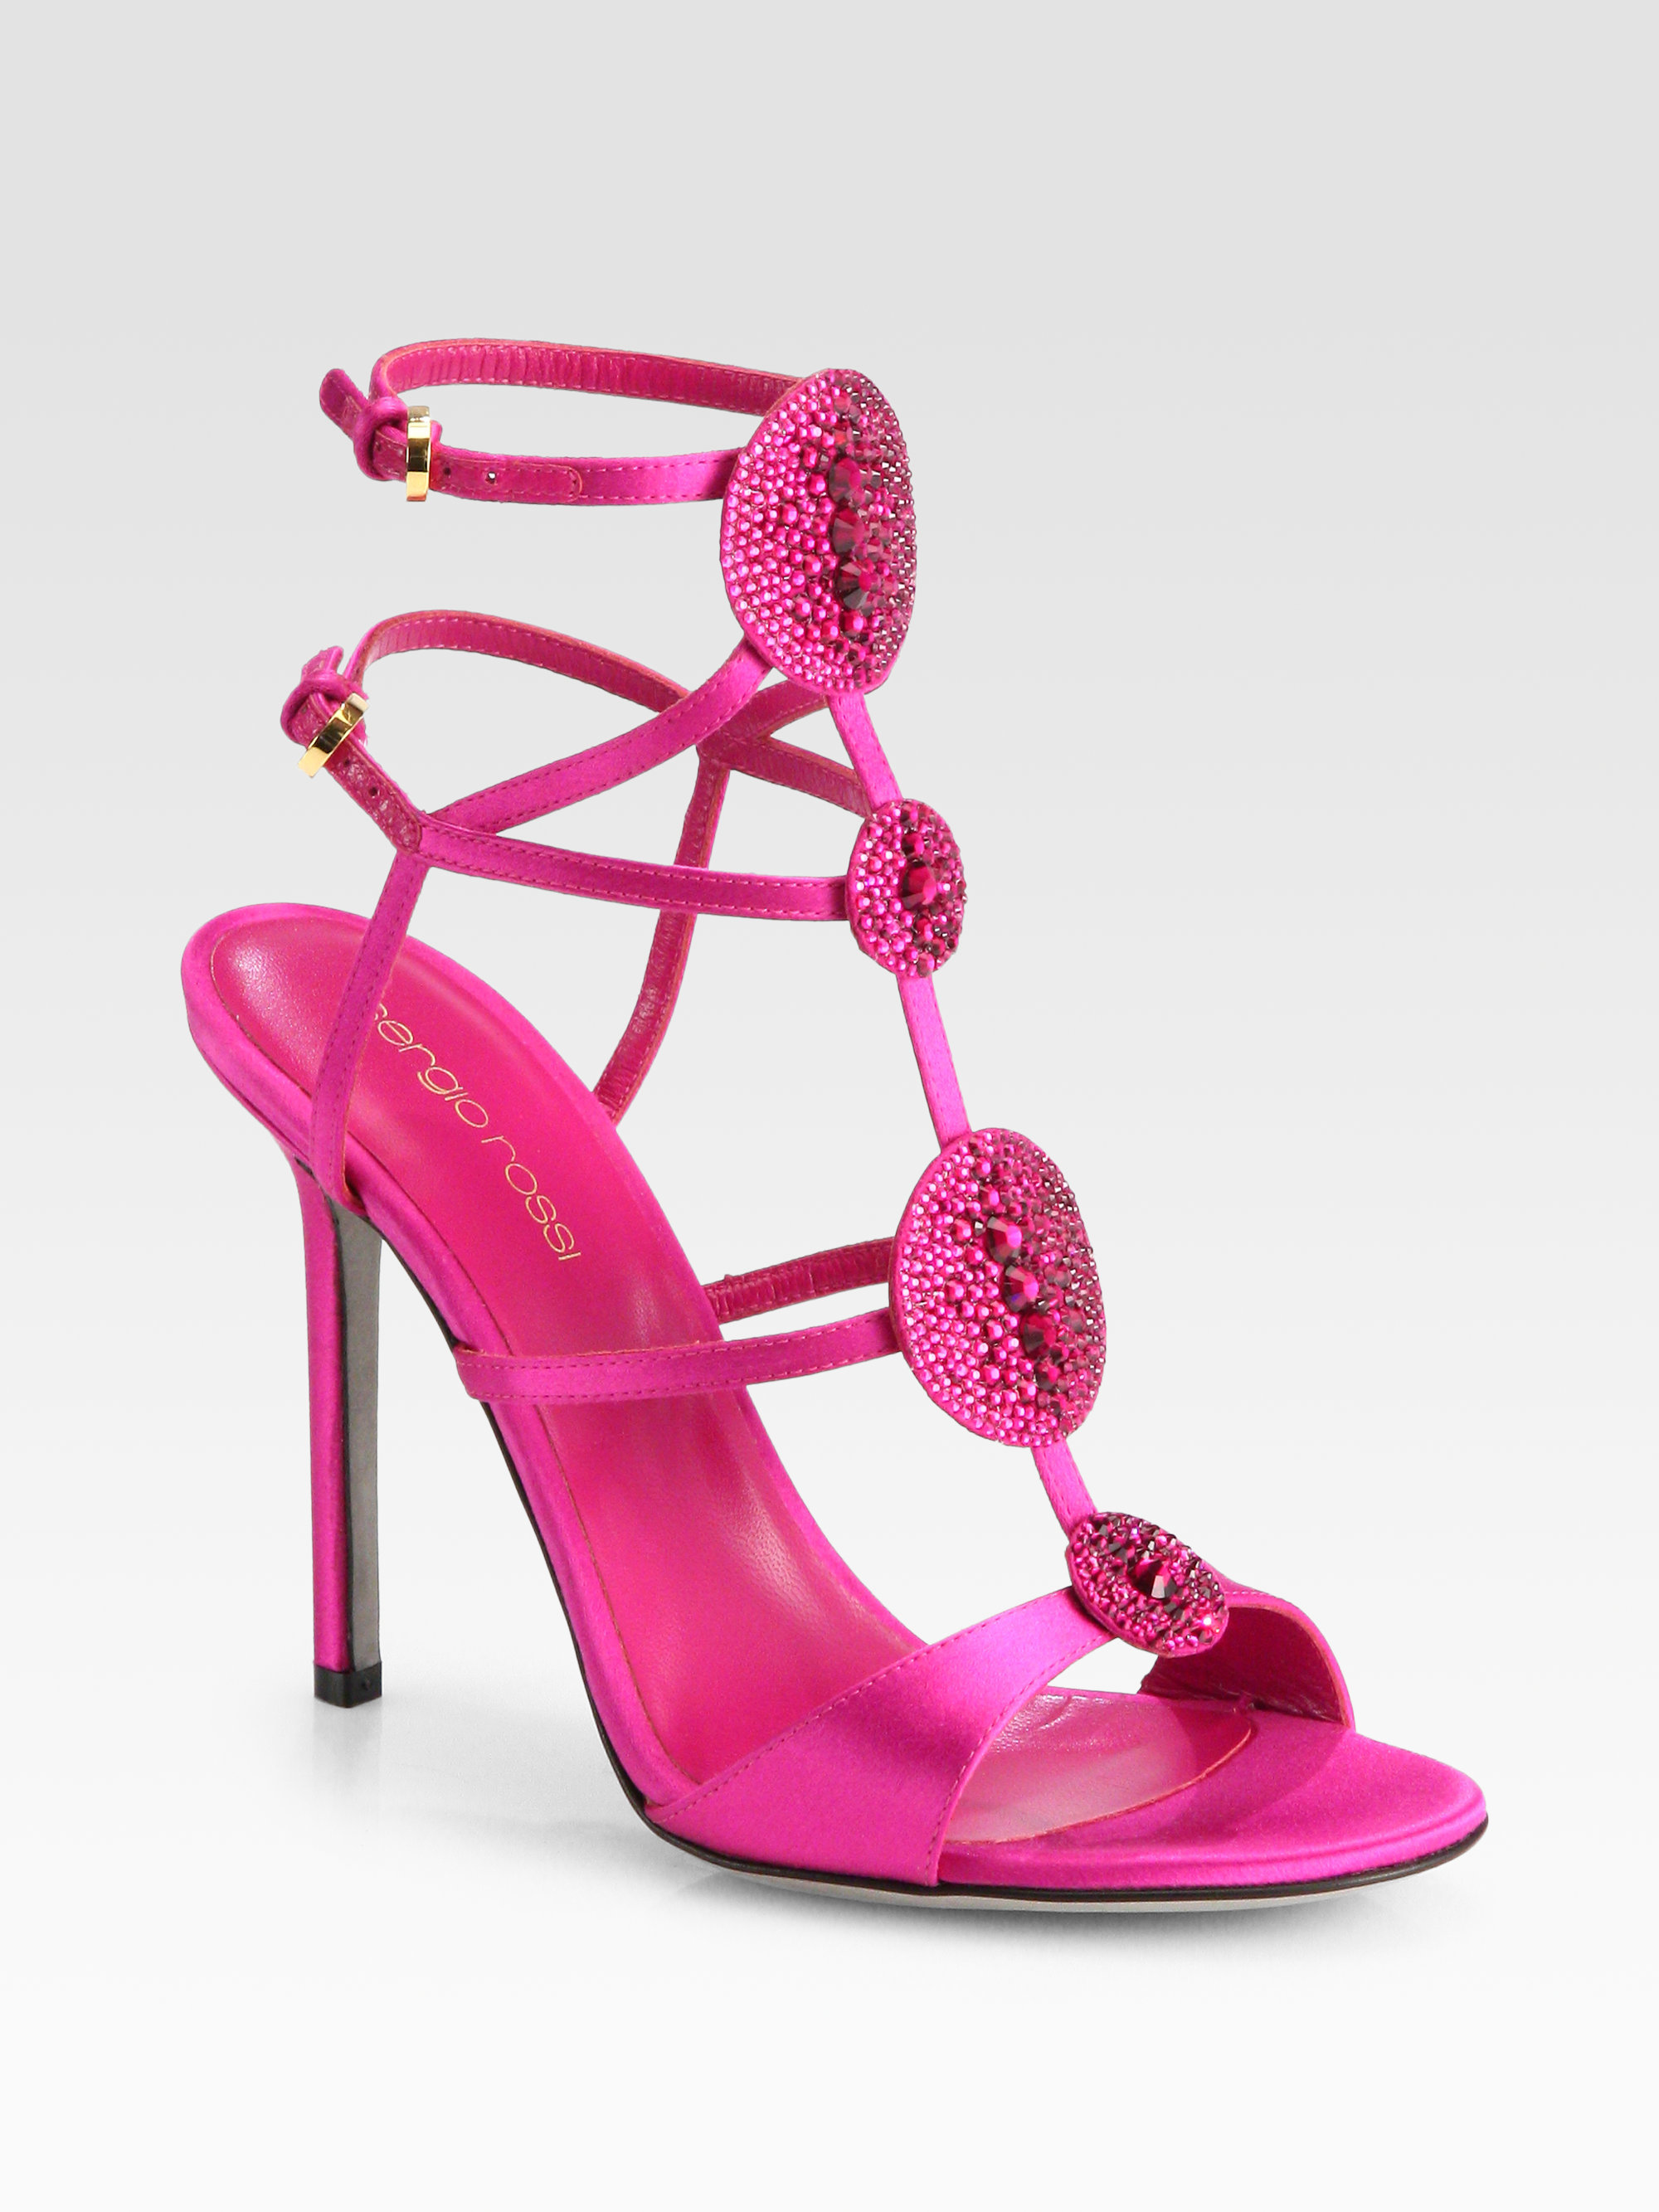 Sergio Rossi Jeweled-Embellishment Satin Mules clearance store cheap online pay with visa sale online discount low price fee shipping factory outlet O3Gzv69j